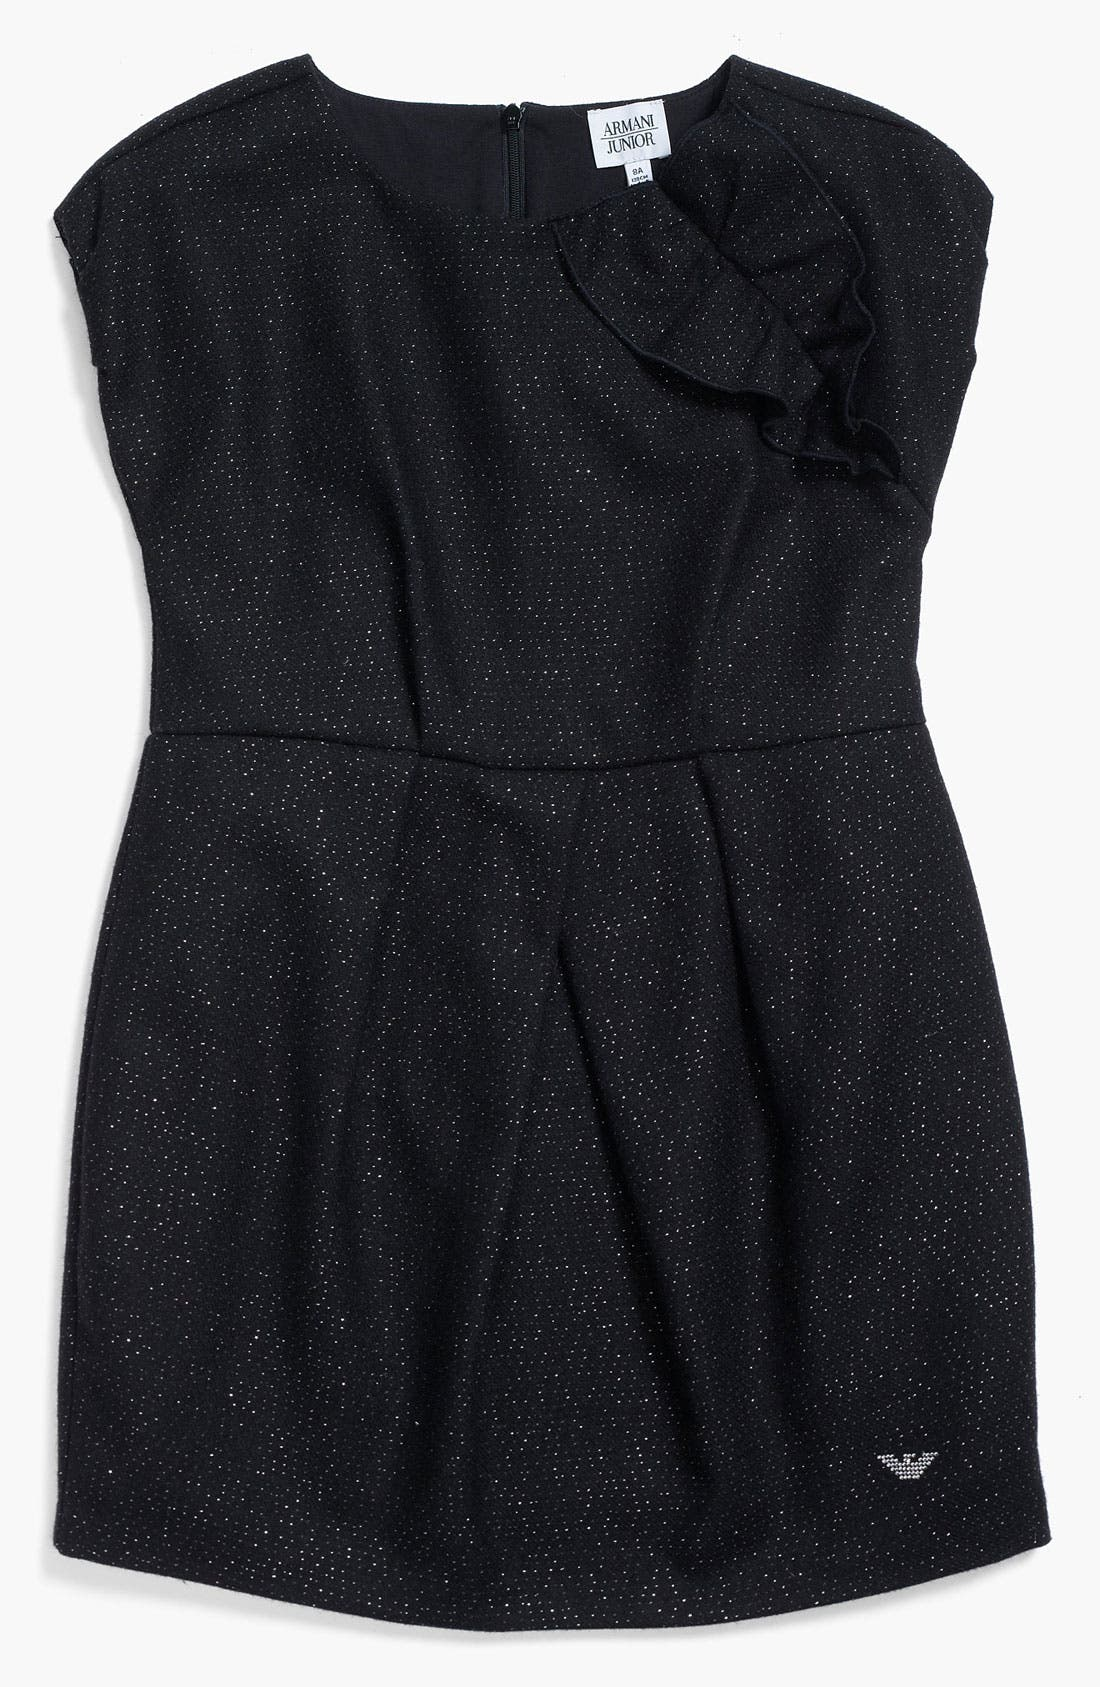 Main Image - Armani Junior Metallic Dress (Big Girls)